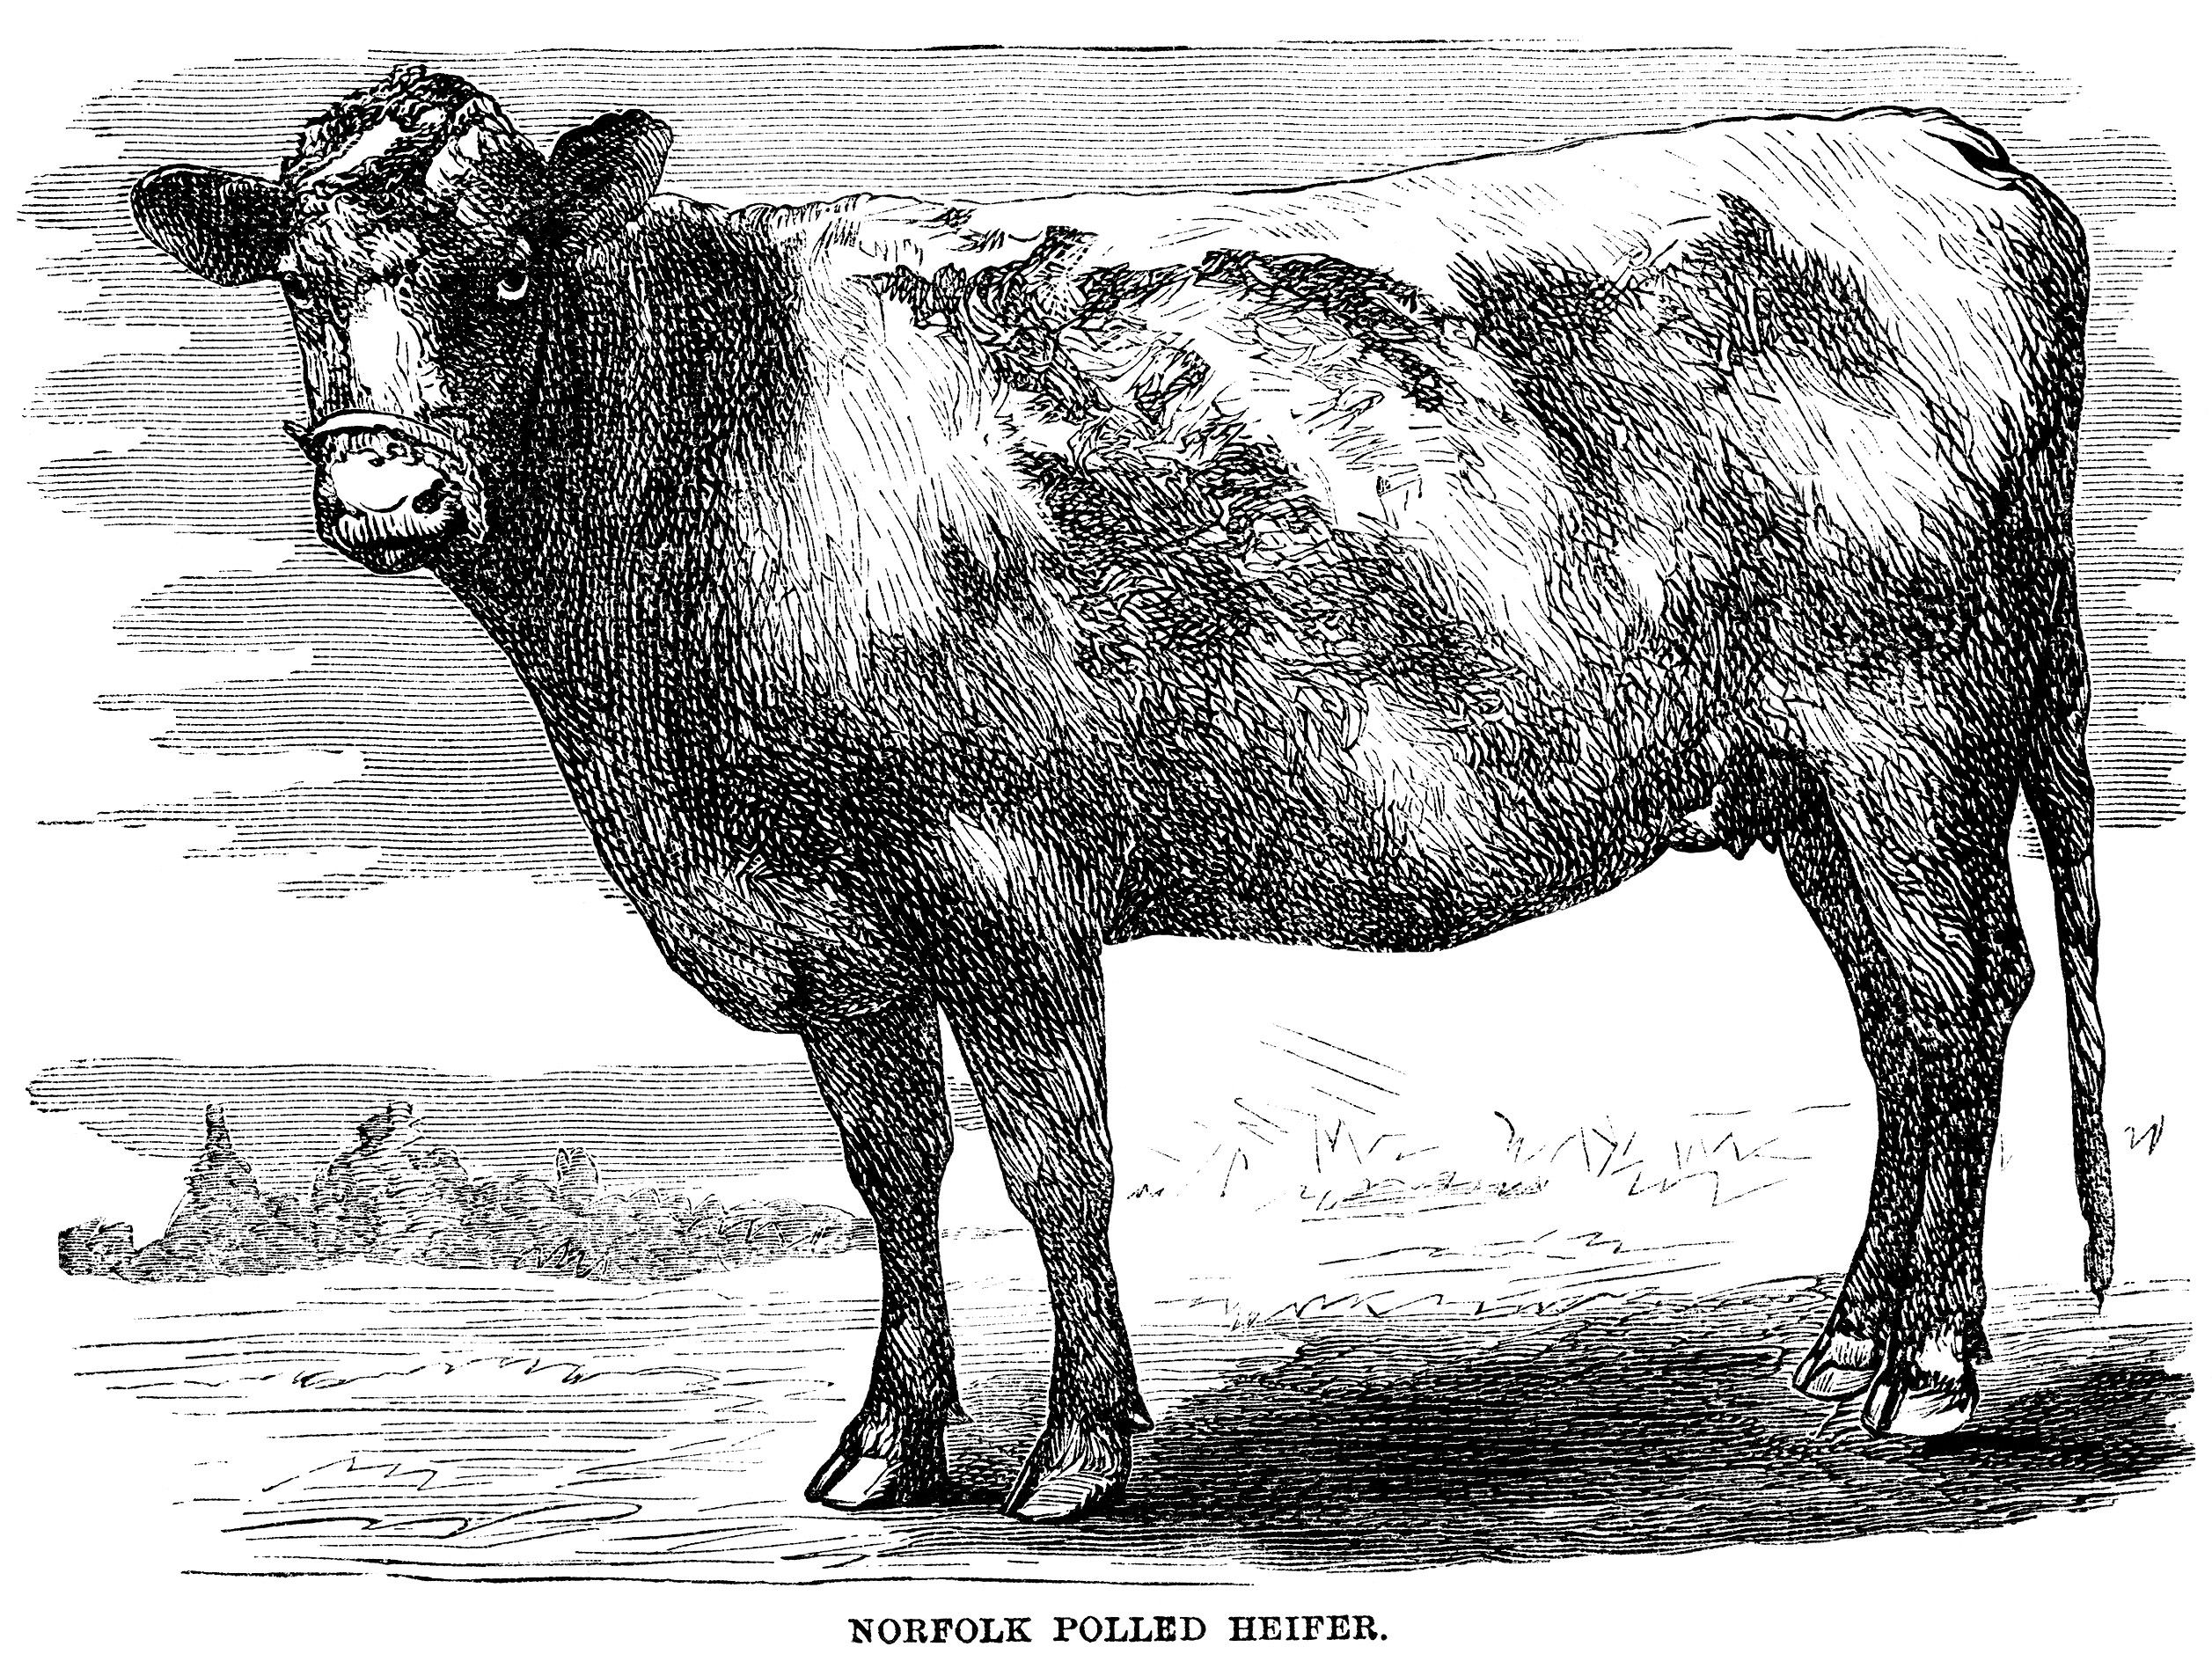 Animal in field black and white clipart image download Here is a vintage engraving of a cow standing in a field with trees ... image download